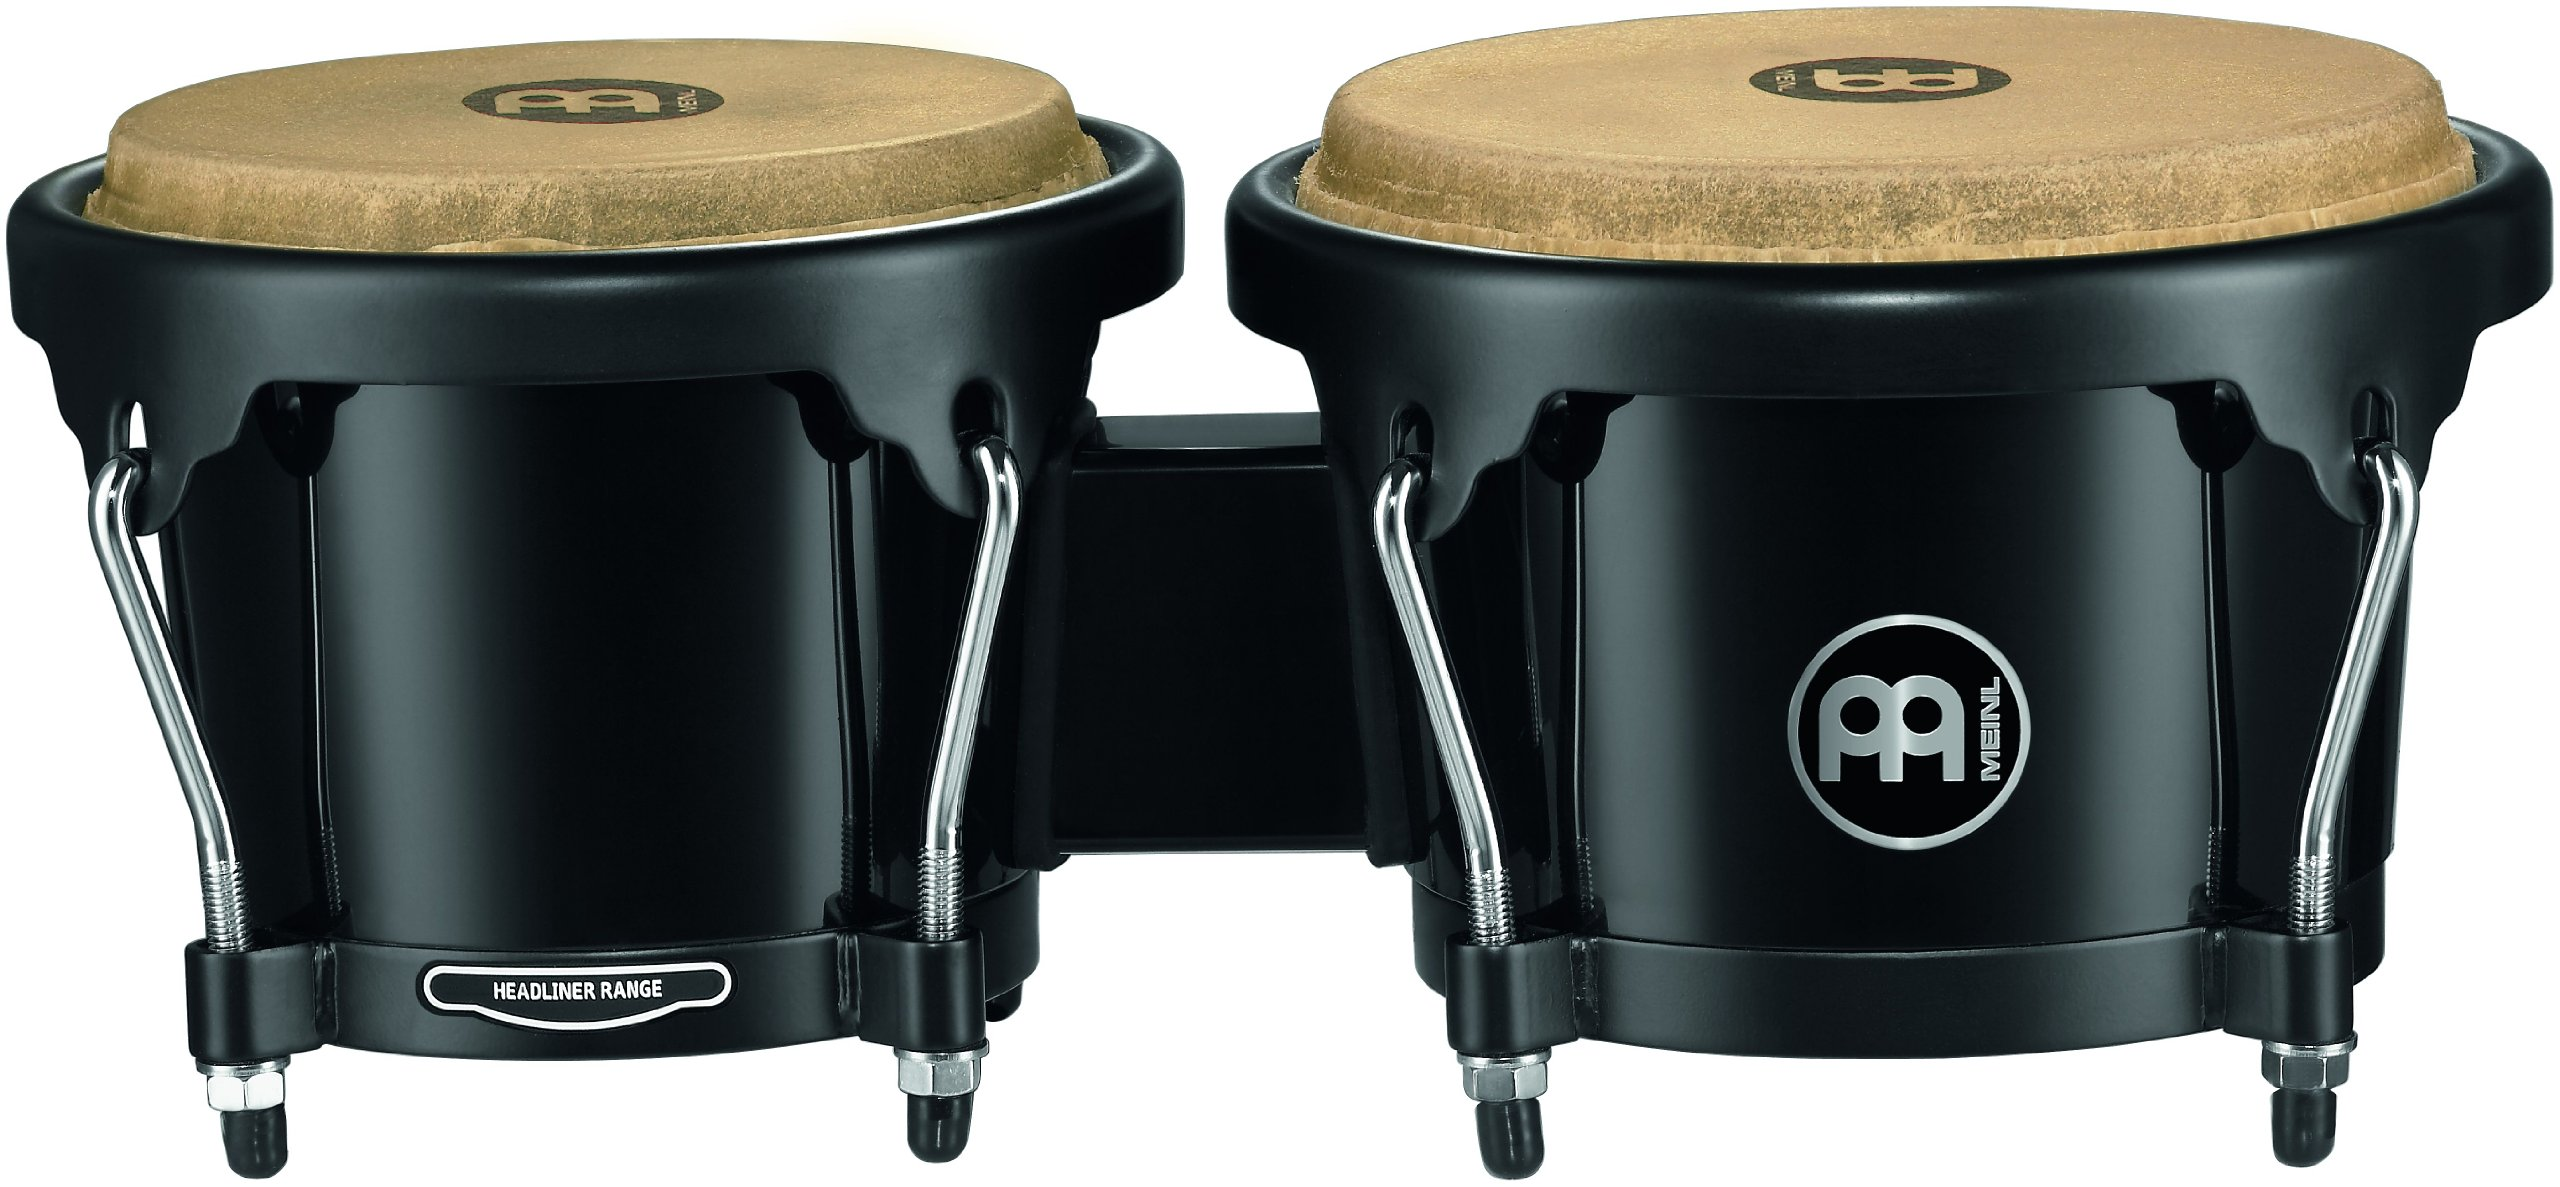 Meinl Bongos With ABS Plastic Shells - NOT MADE IN CHINA - Natural Skin Heads, 2-YEAR WARRANTY (HB50BK) by Meinl